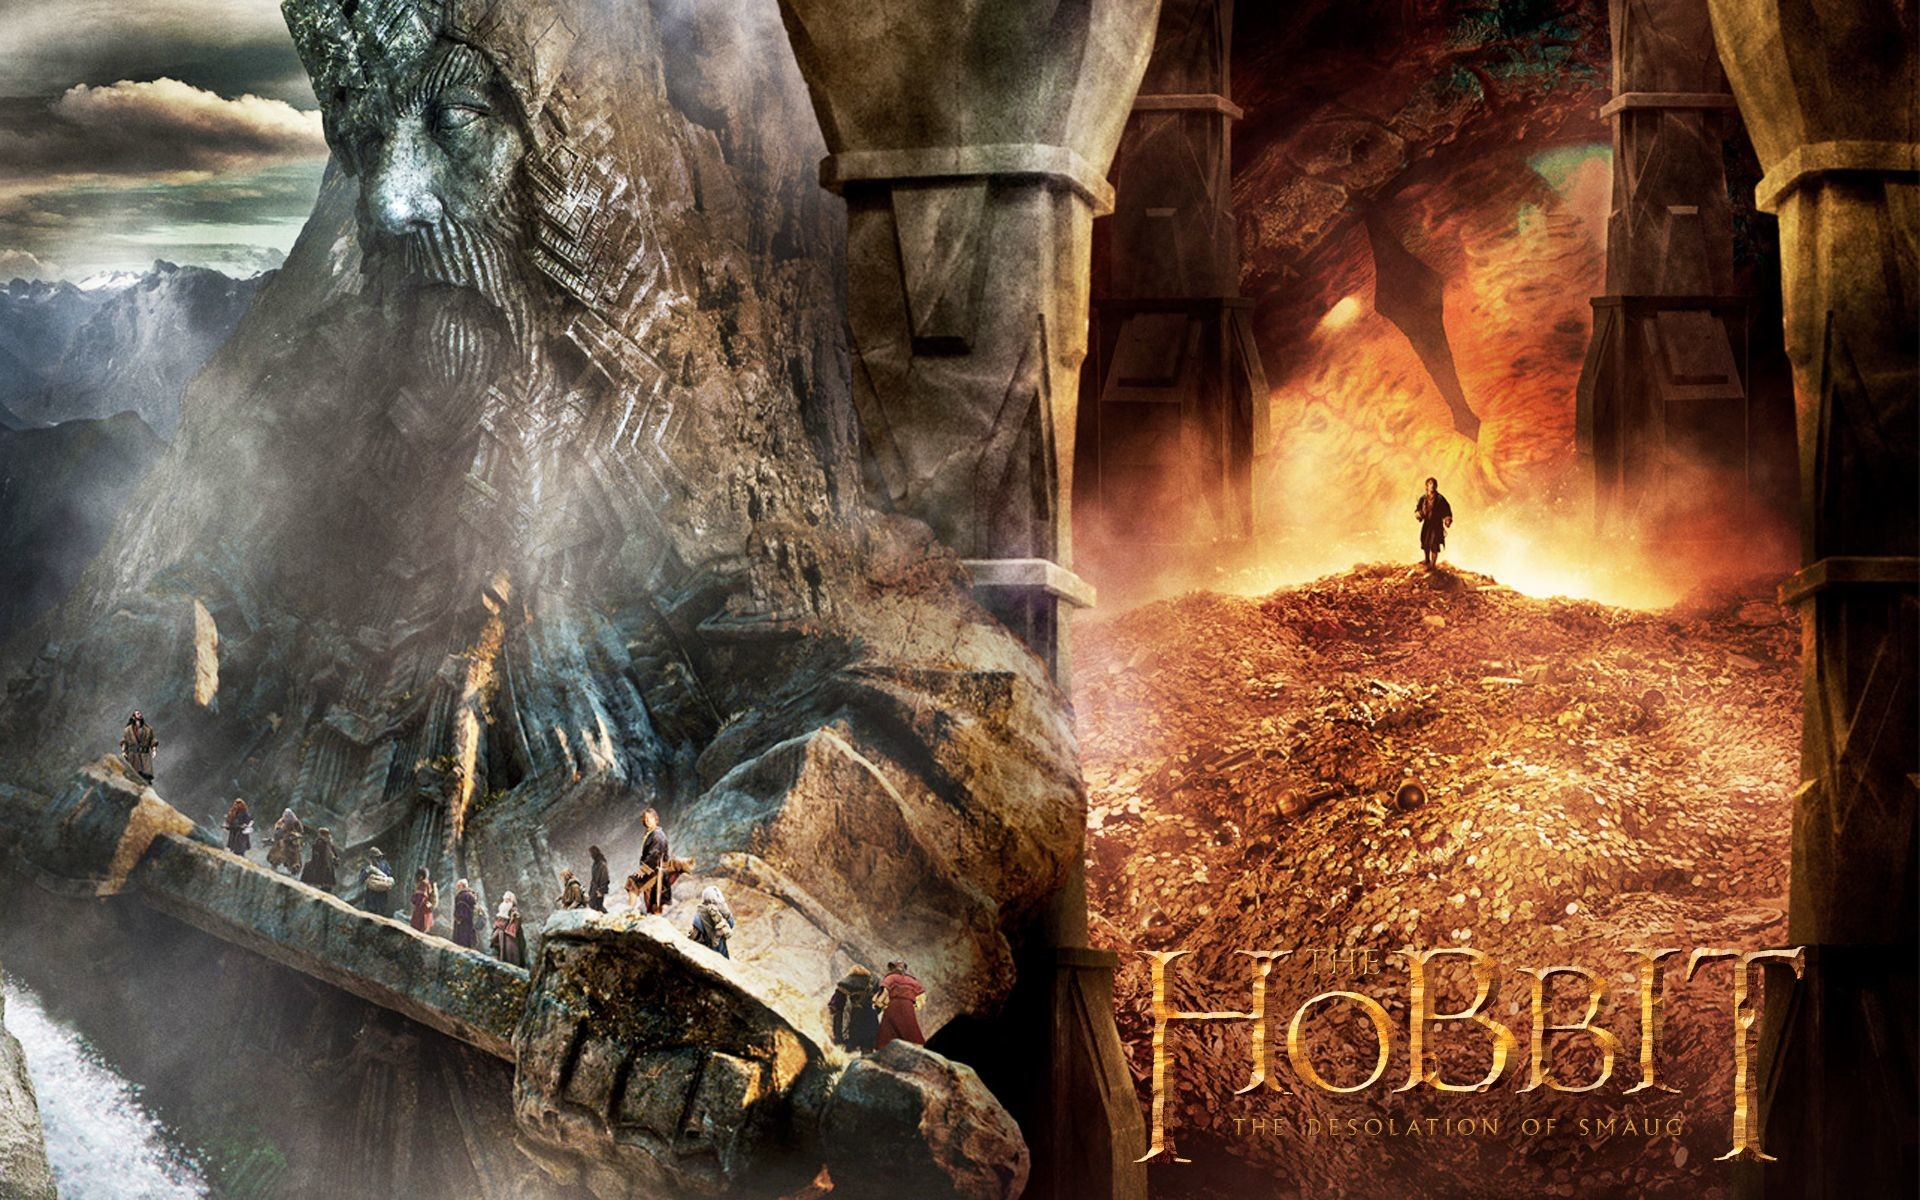 The Hobbit: The Desolation of Smaug Wallpaper – The Hobbit .